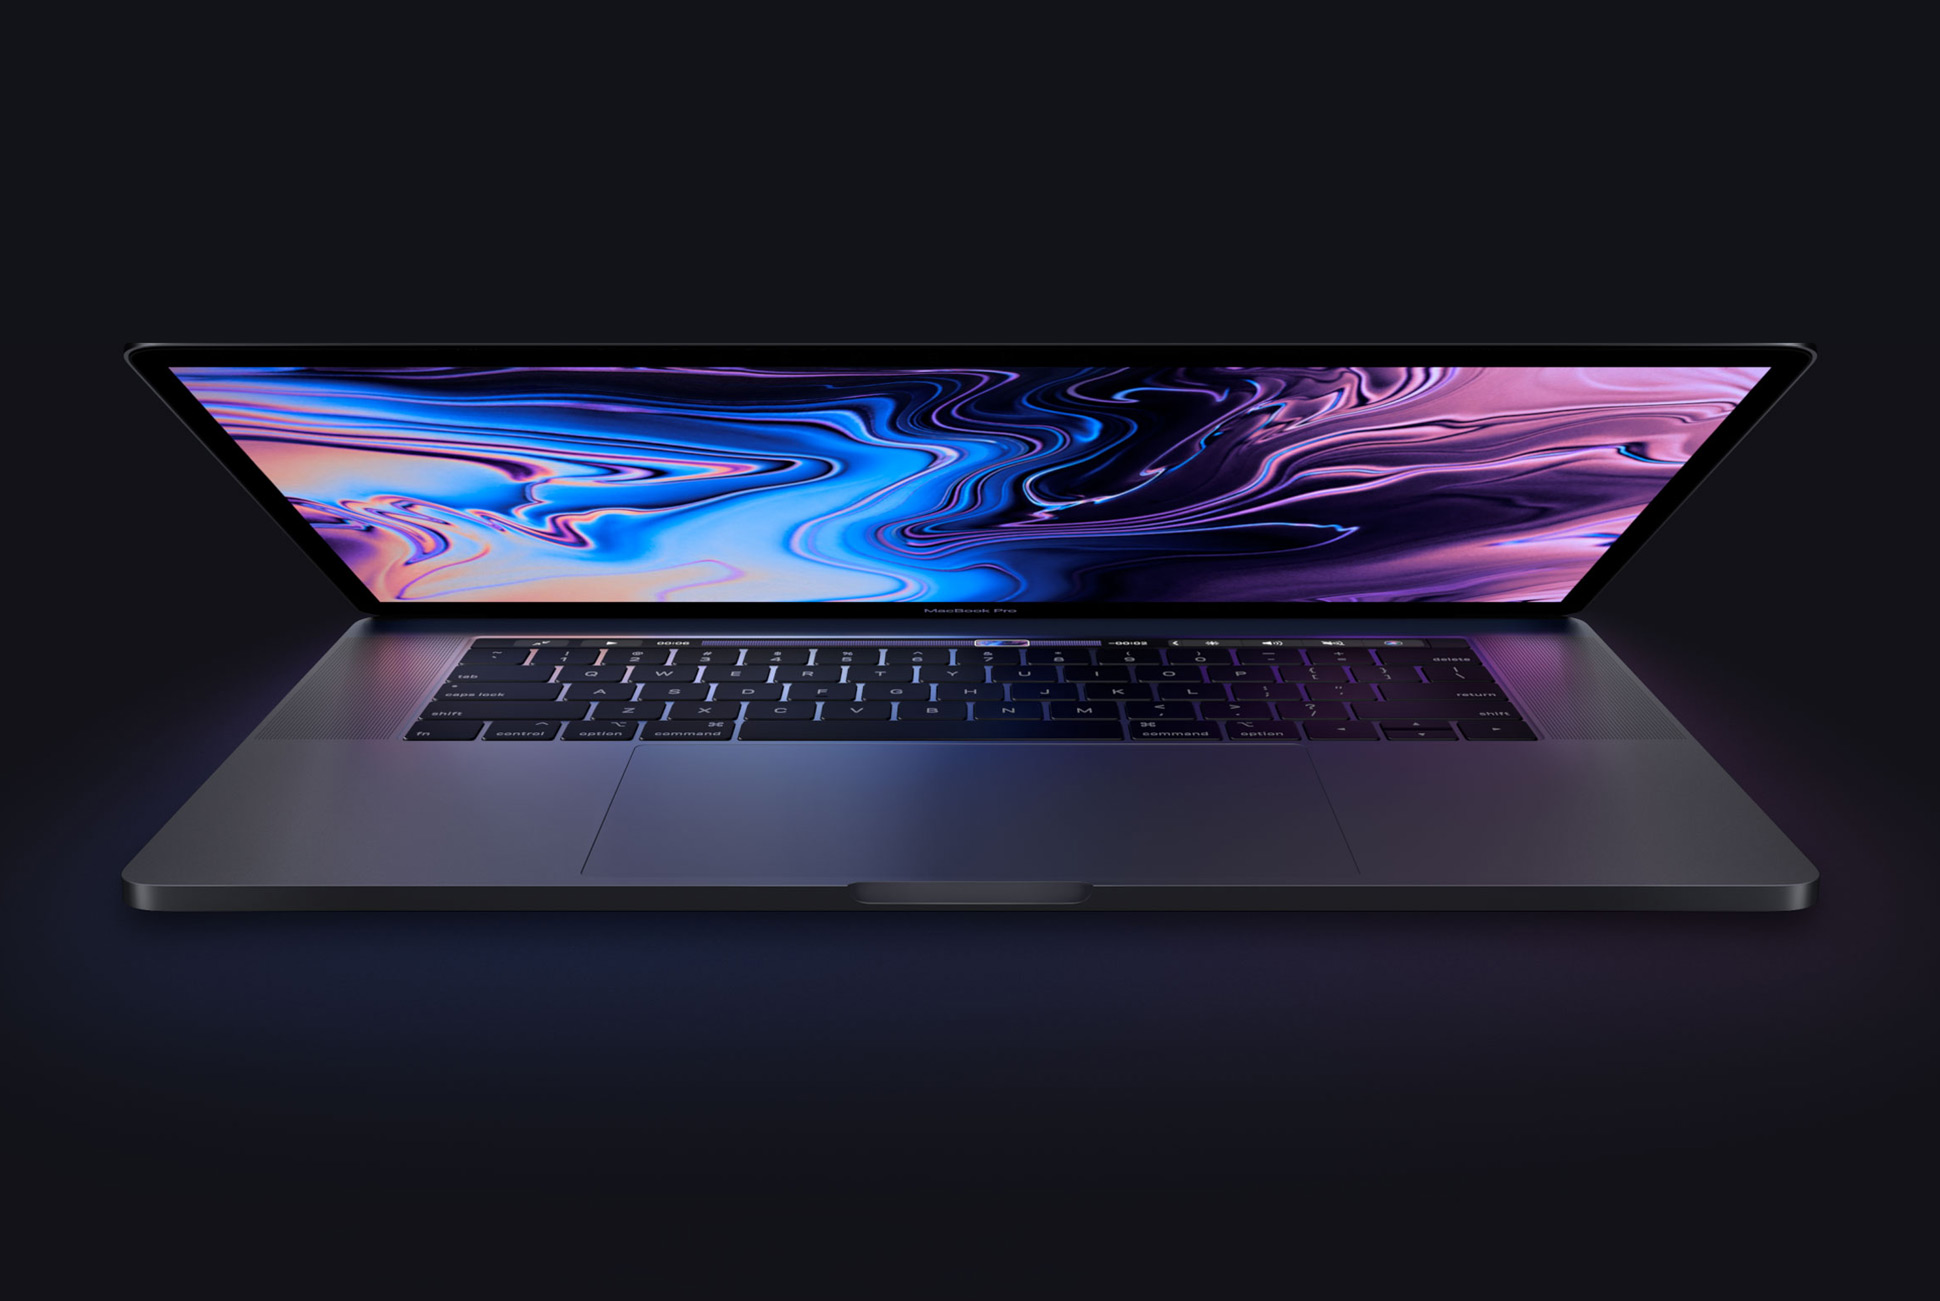 Apple launched new MacBook Pro models with Touch Bar, new RAM, eighth-gen CPU and True Tone Screen